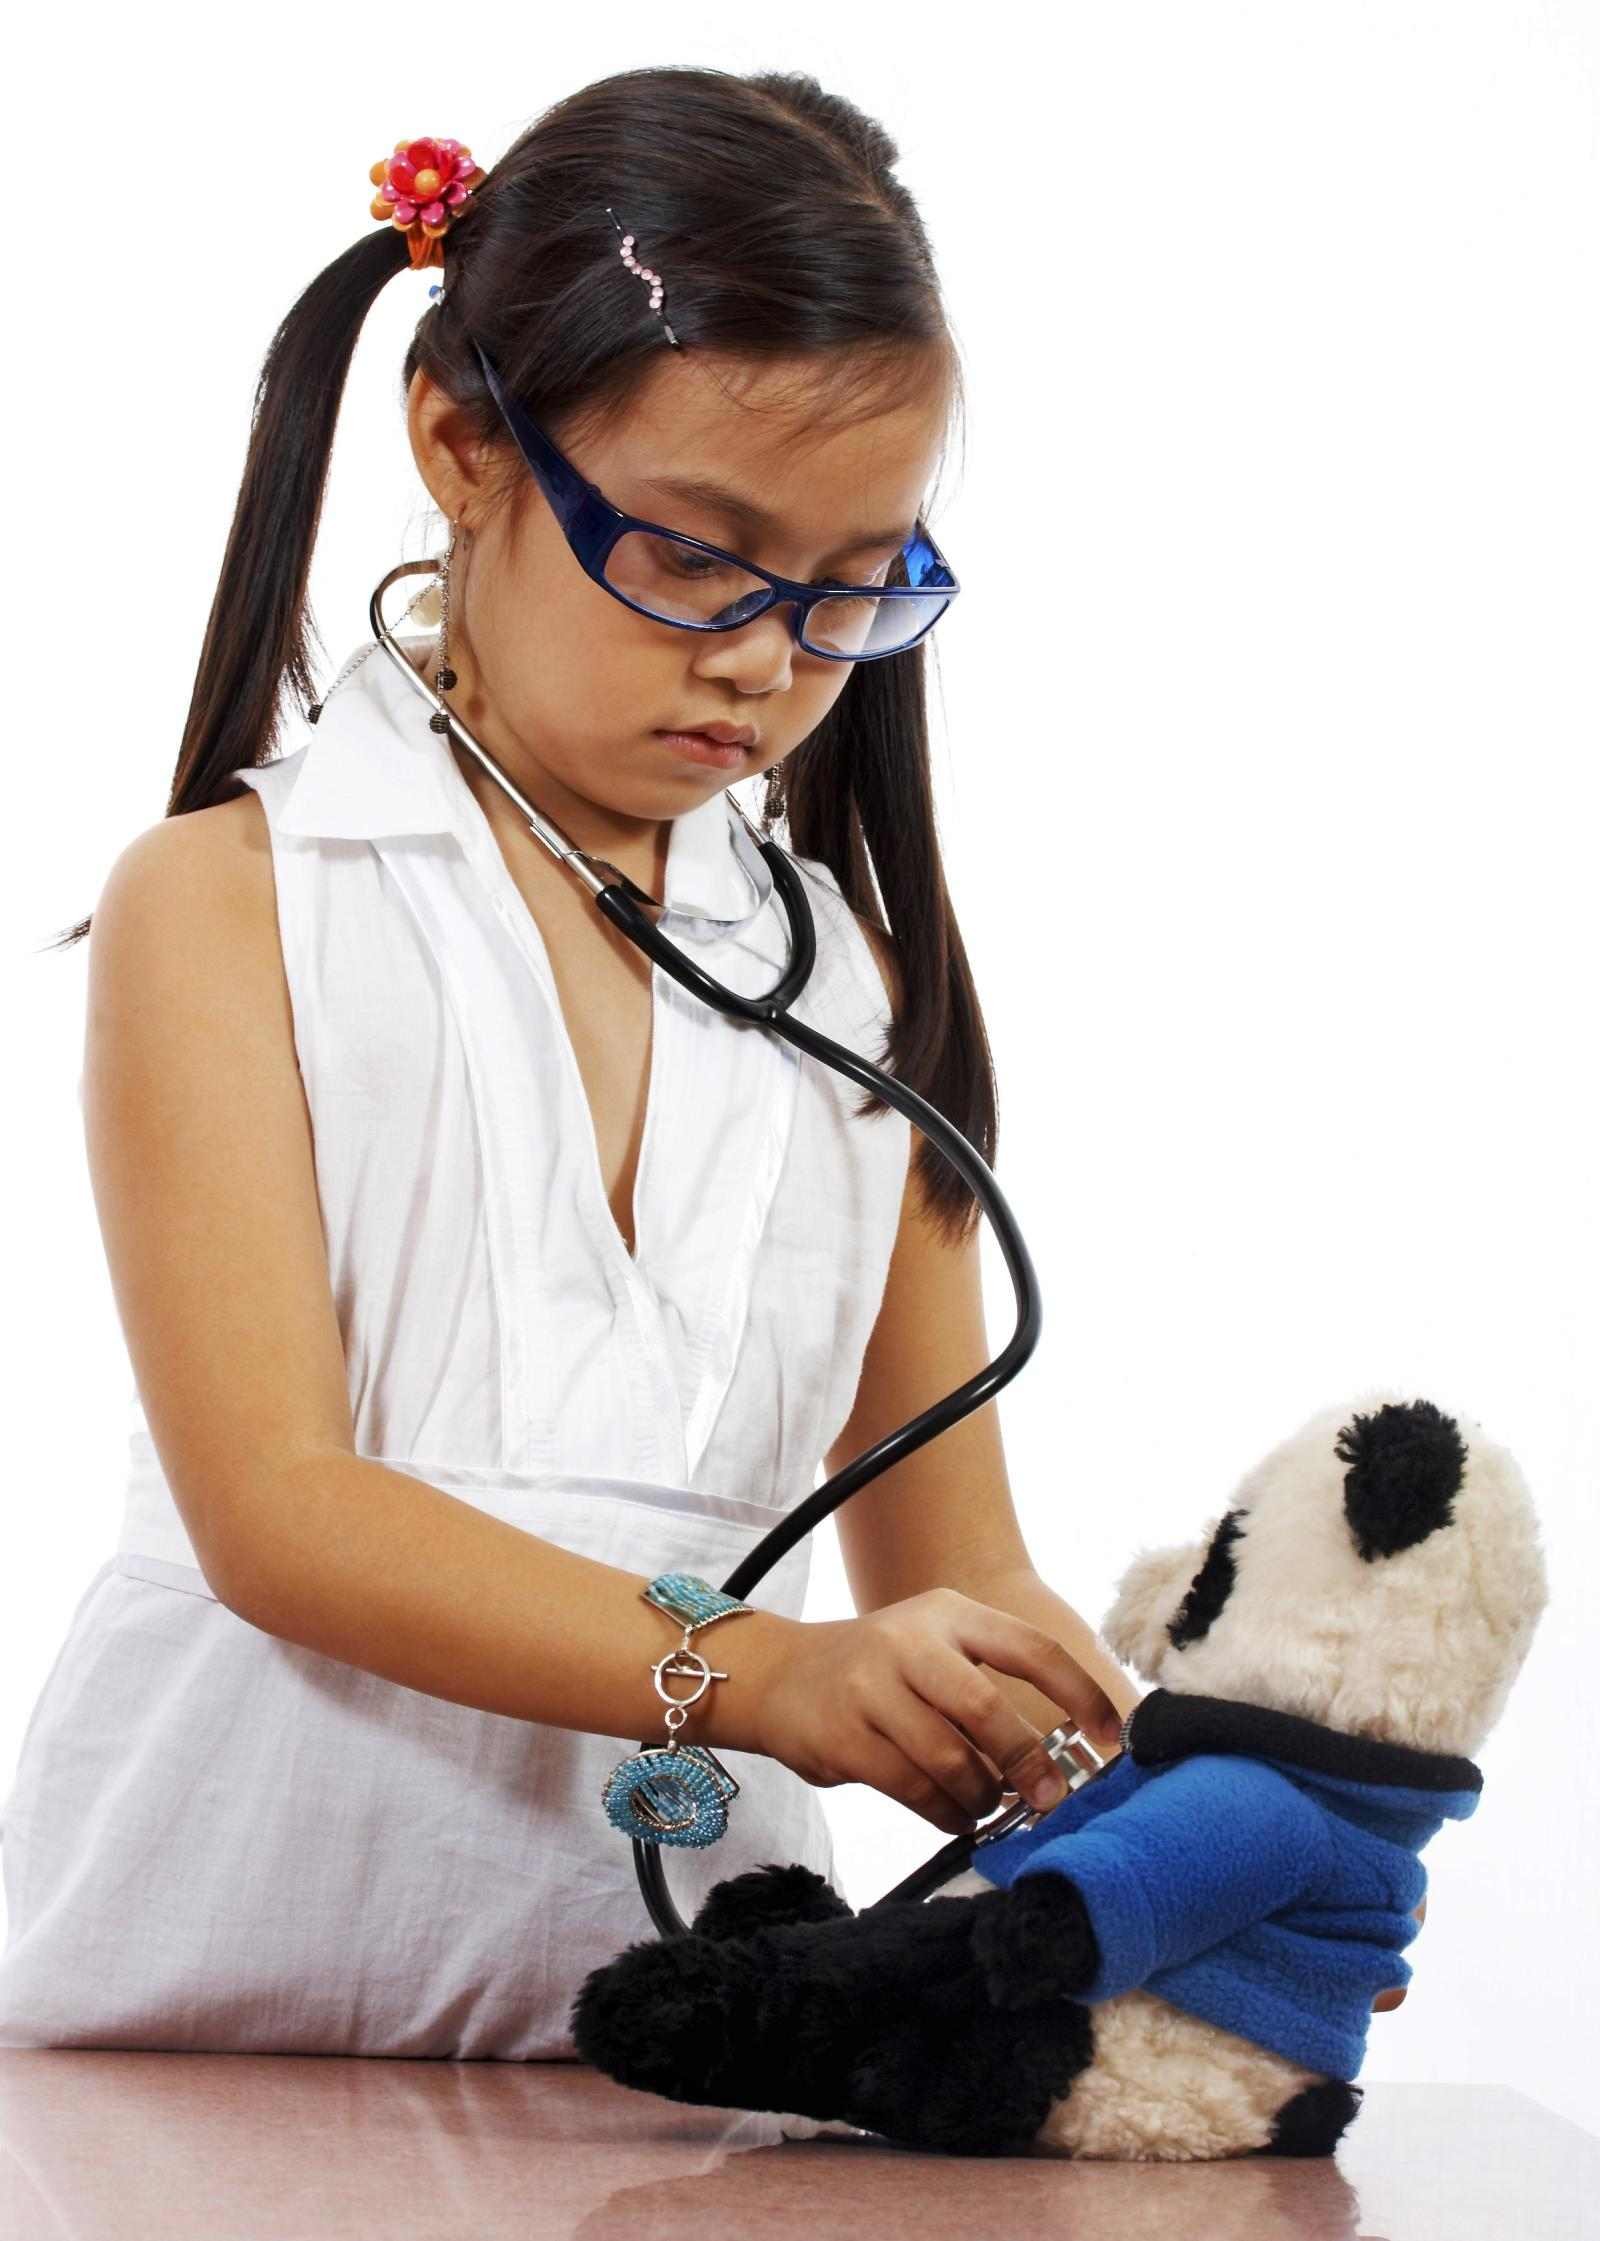 young child playing doctor with her teddy bear